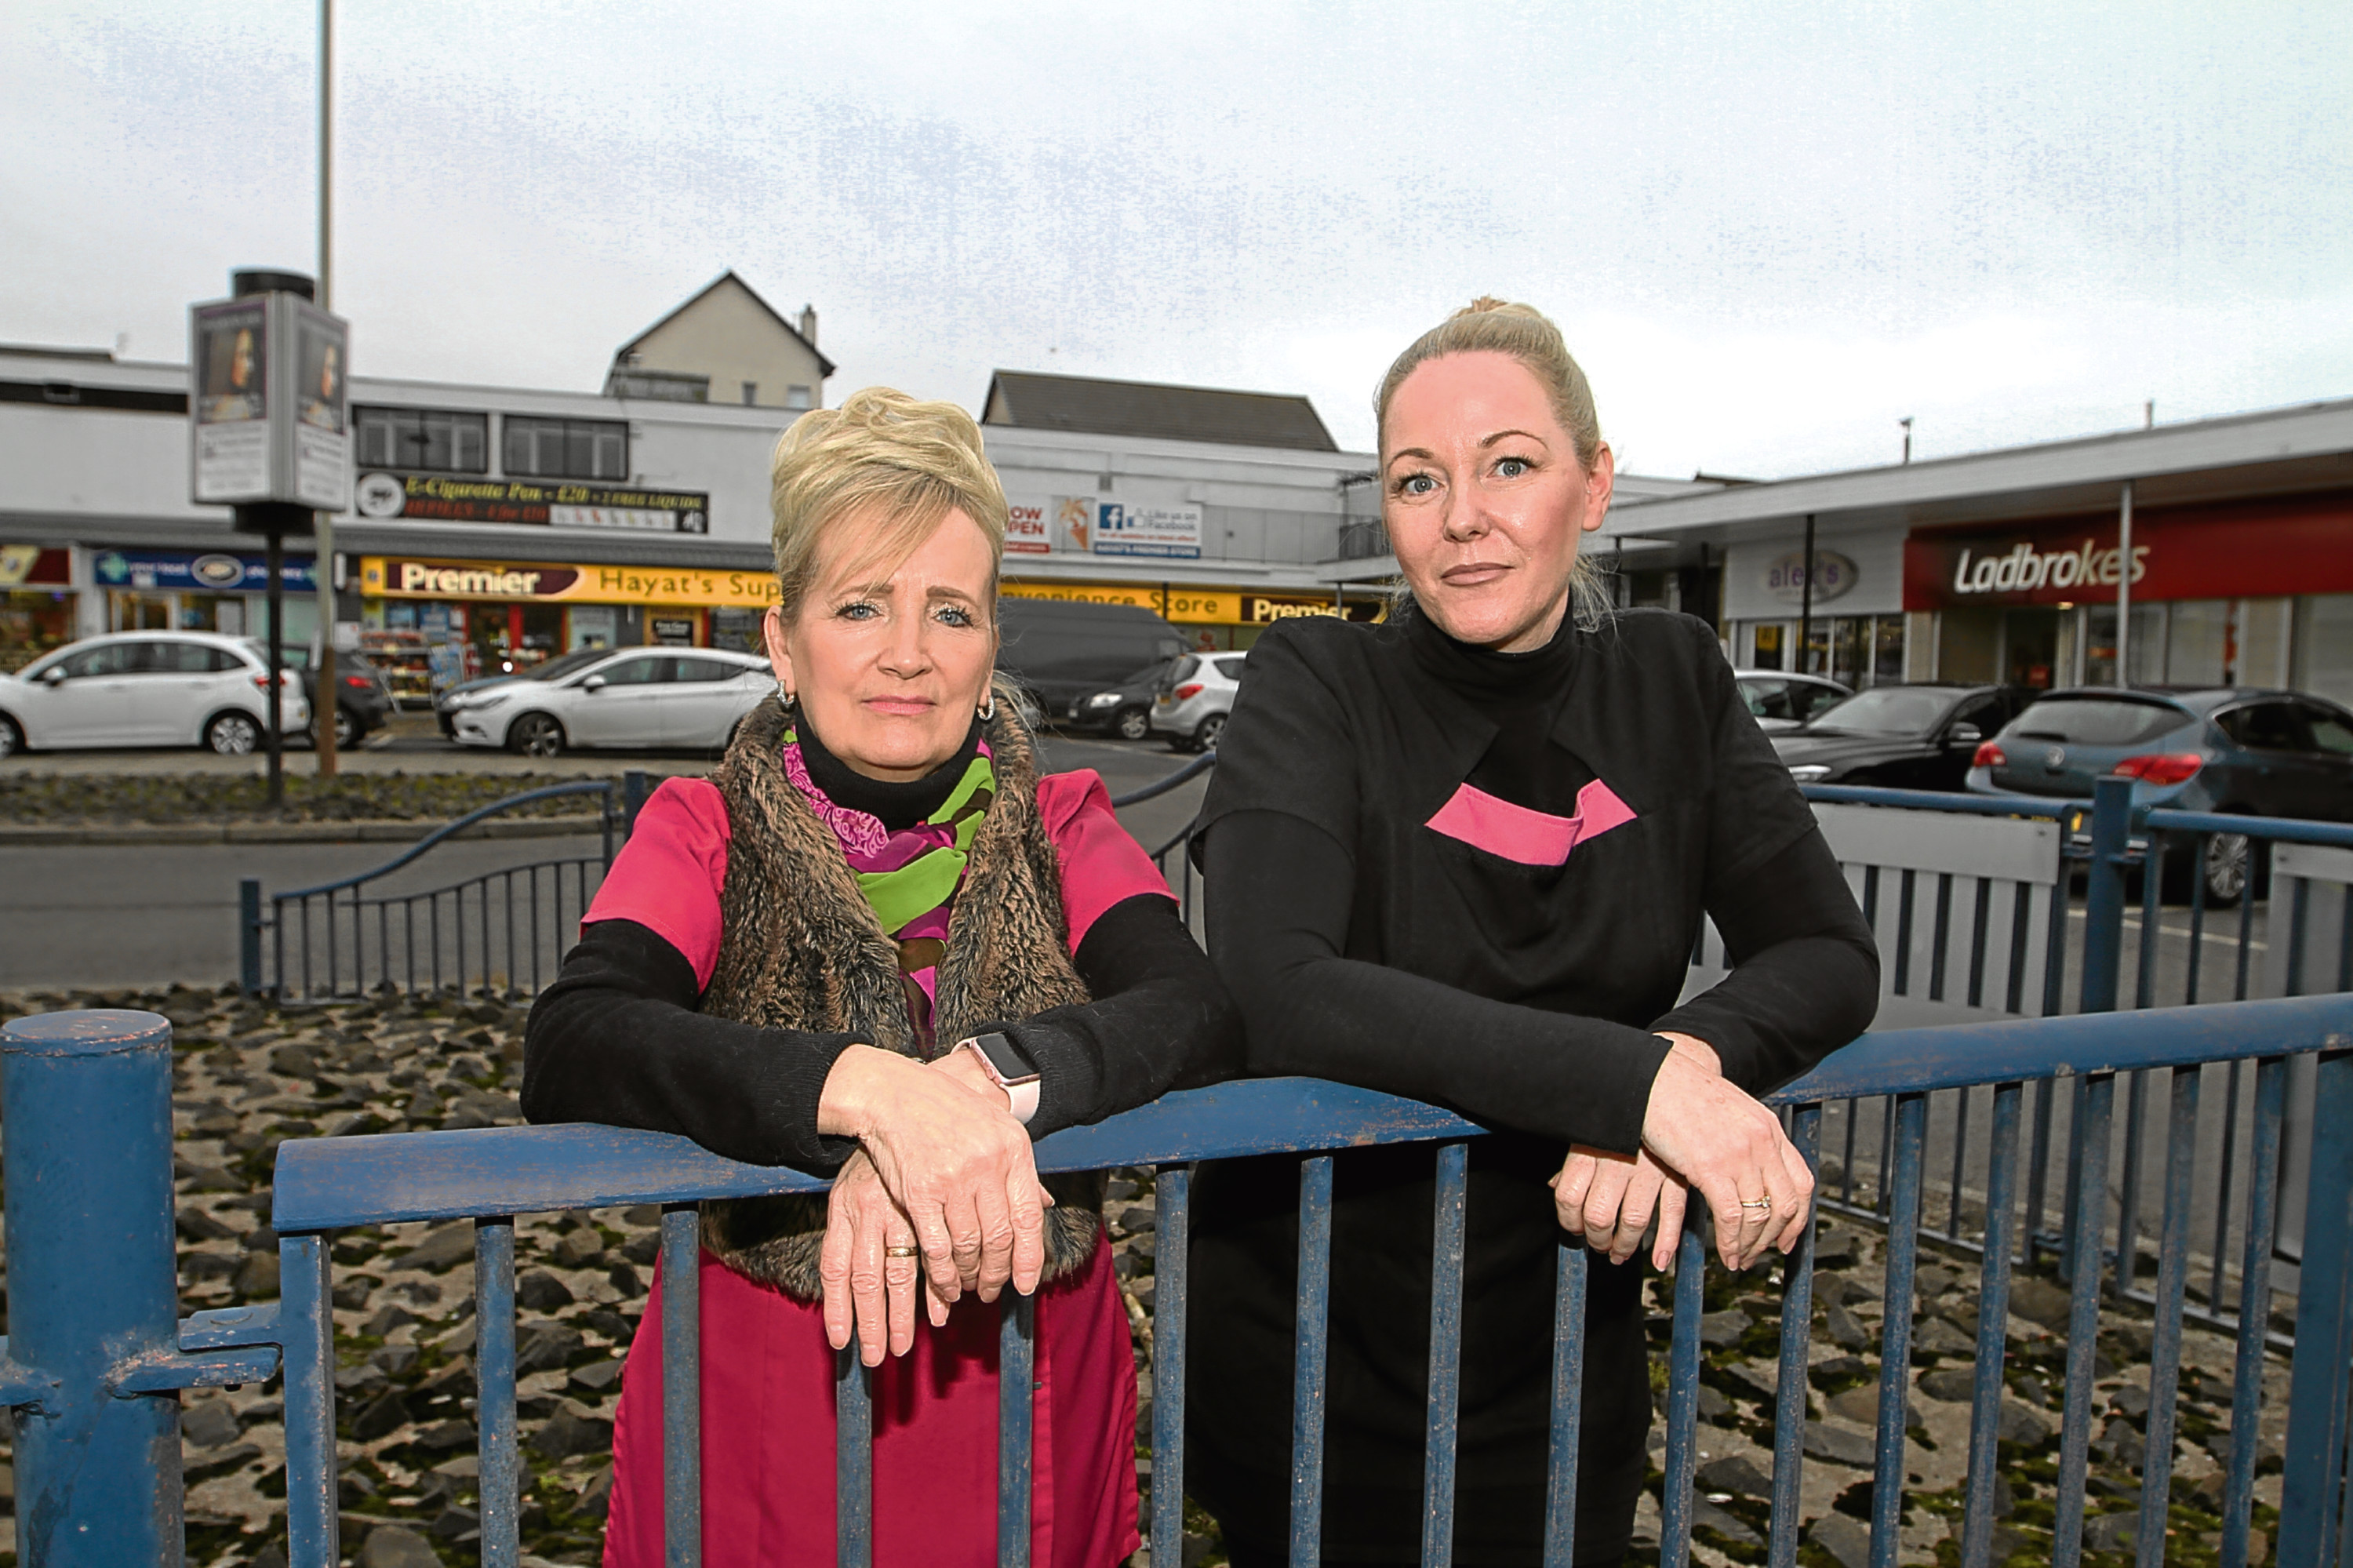 Sandra Squire and Fiona Paterson, of Alex's Hair and Beauty in Happyhillock Road.